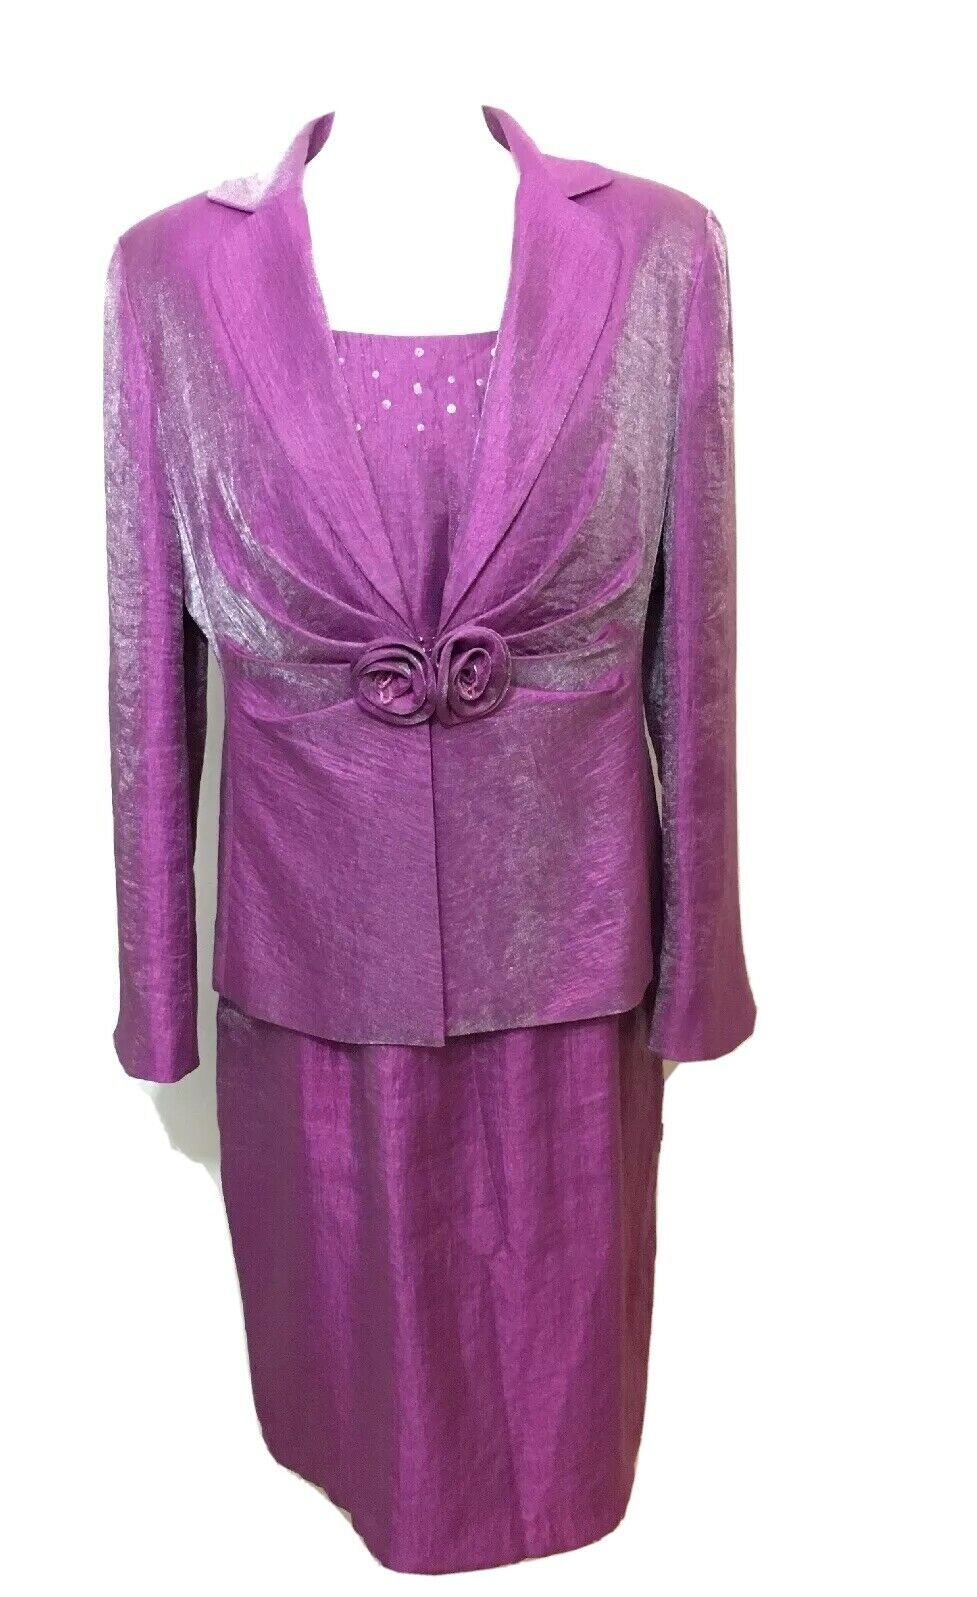 Gina Bacconi Lilac Dress & Jacket Size 16 Uk Mother Of The Bride Occasion